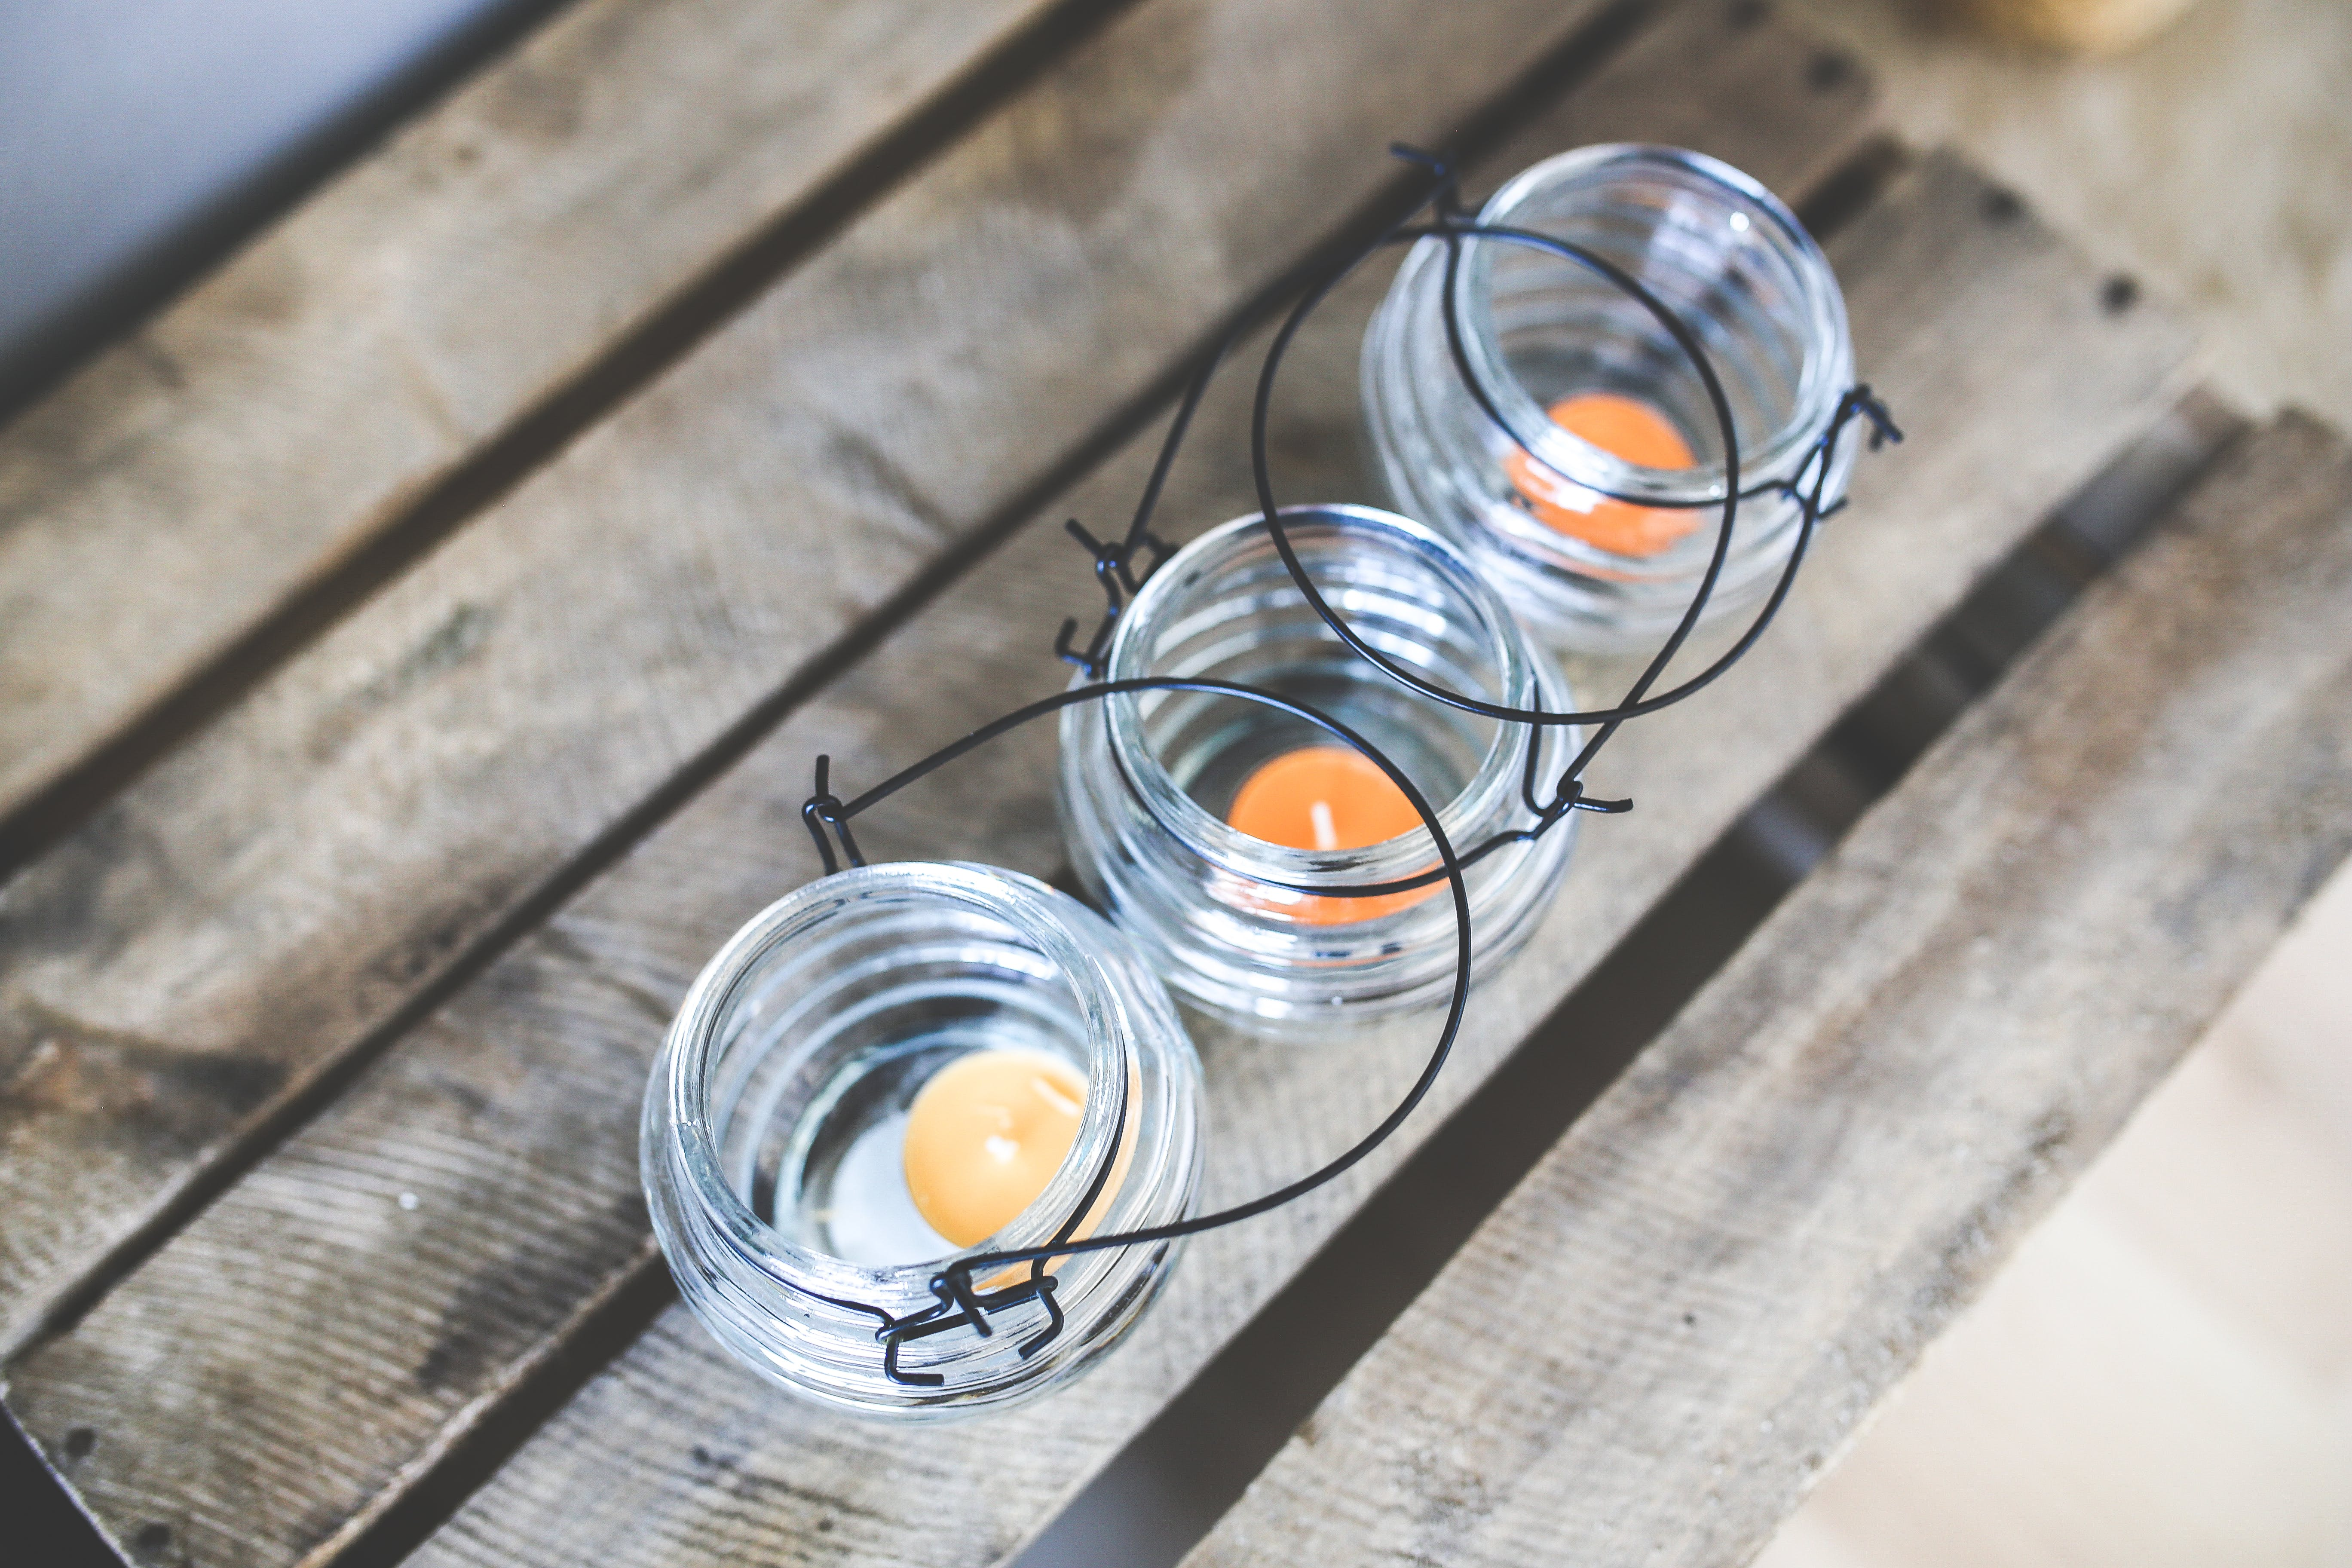 Three candleholders with tealights